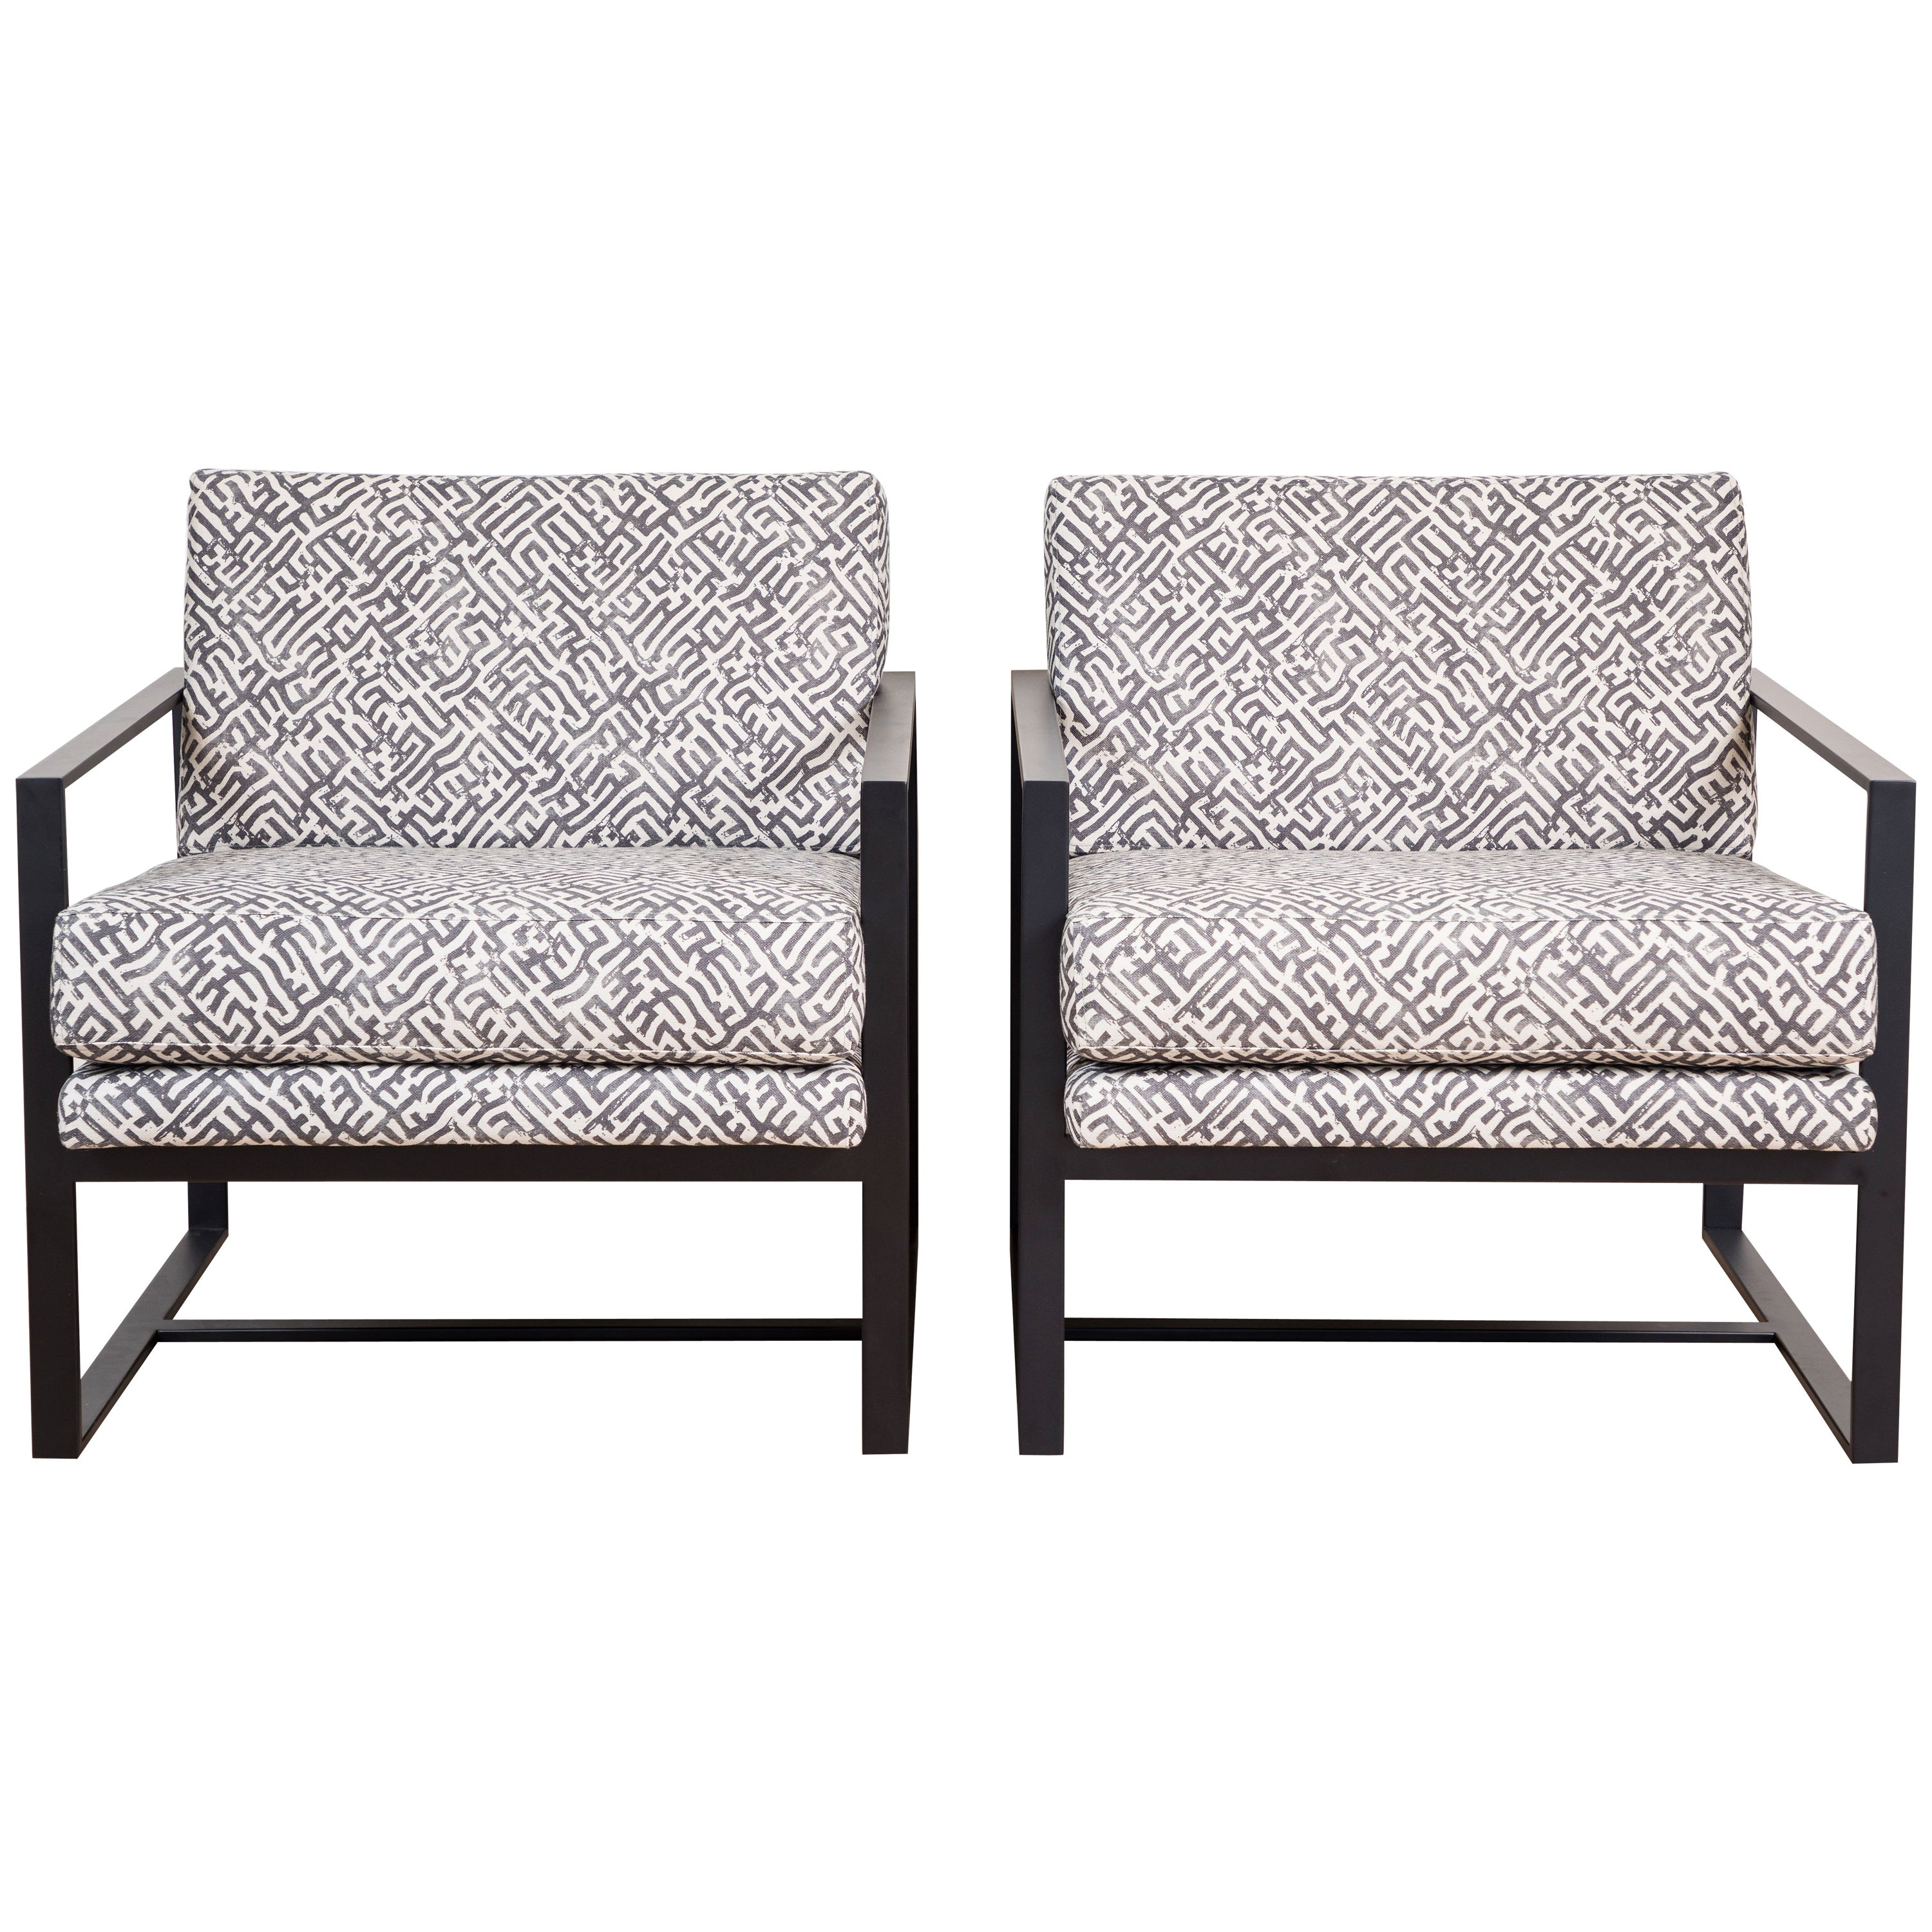 Pair of Box Chairs by Lawson-Fenning